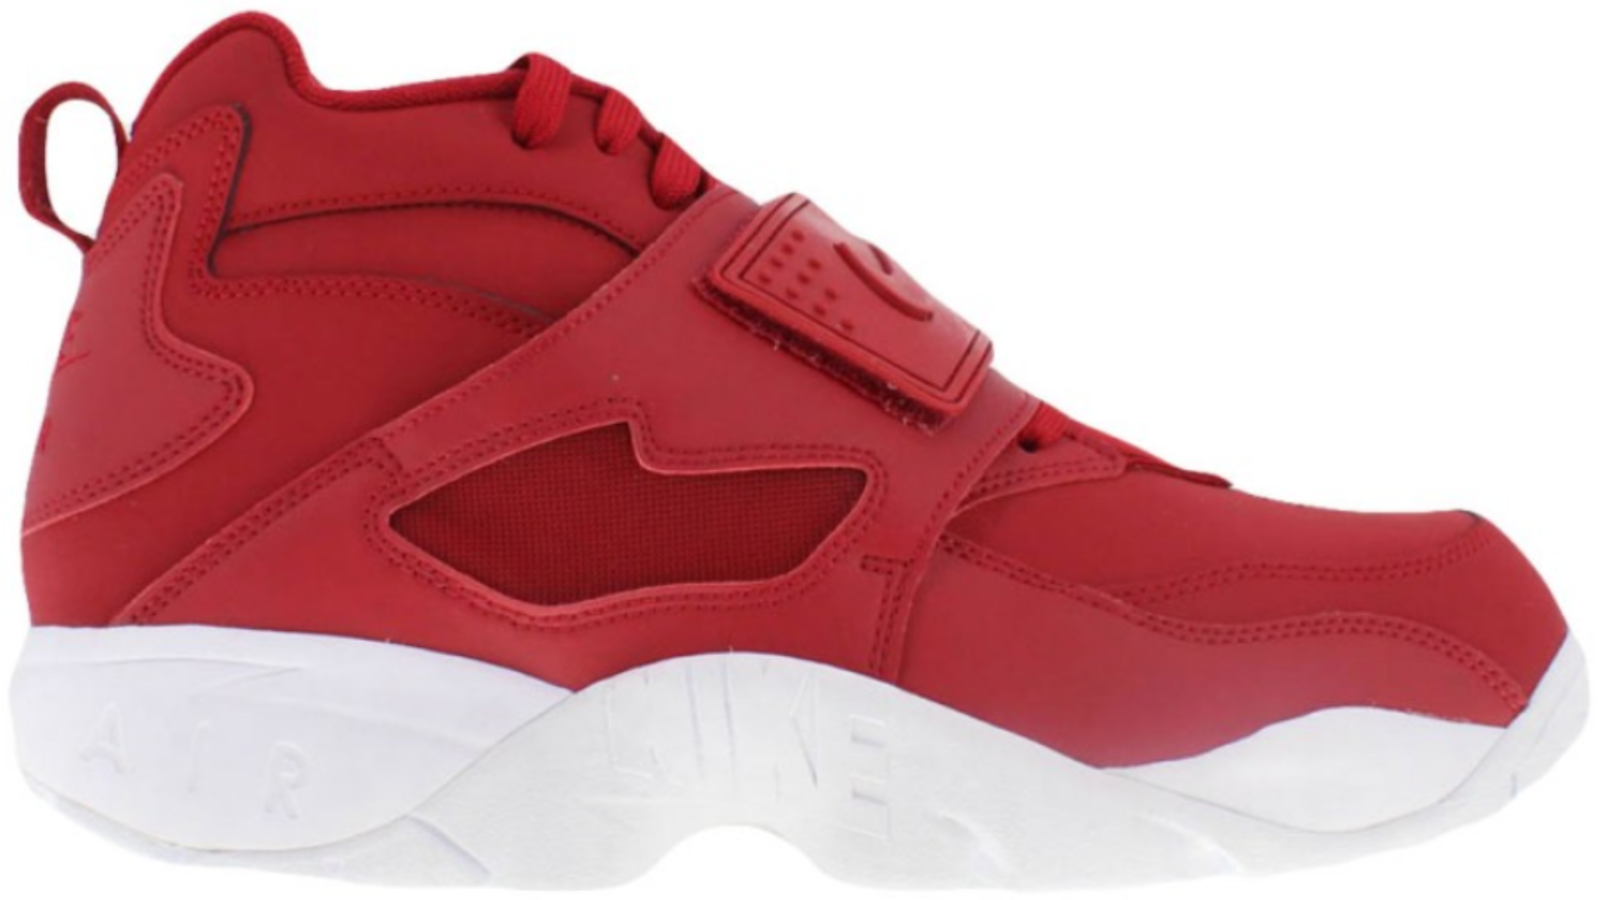 "NIKE AIR DIAMOND TURF MID ""Red/White""(309434-600)"